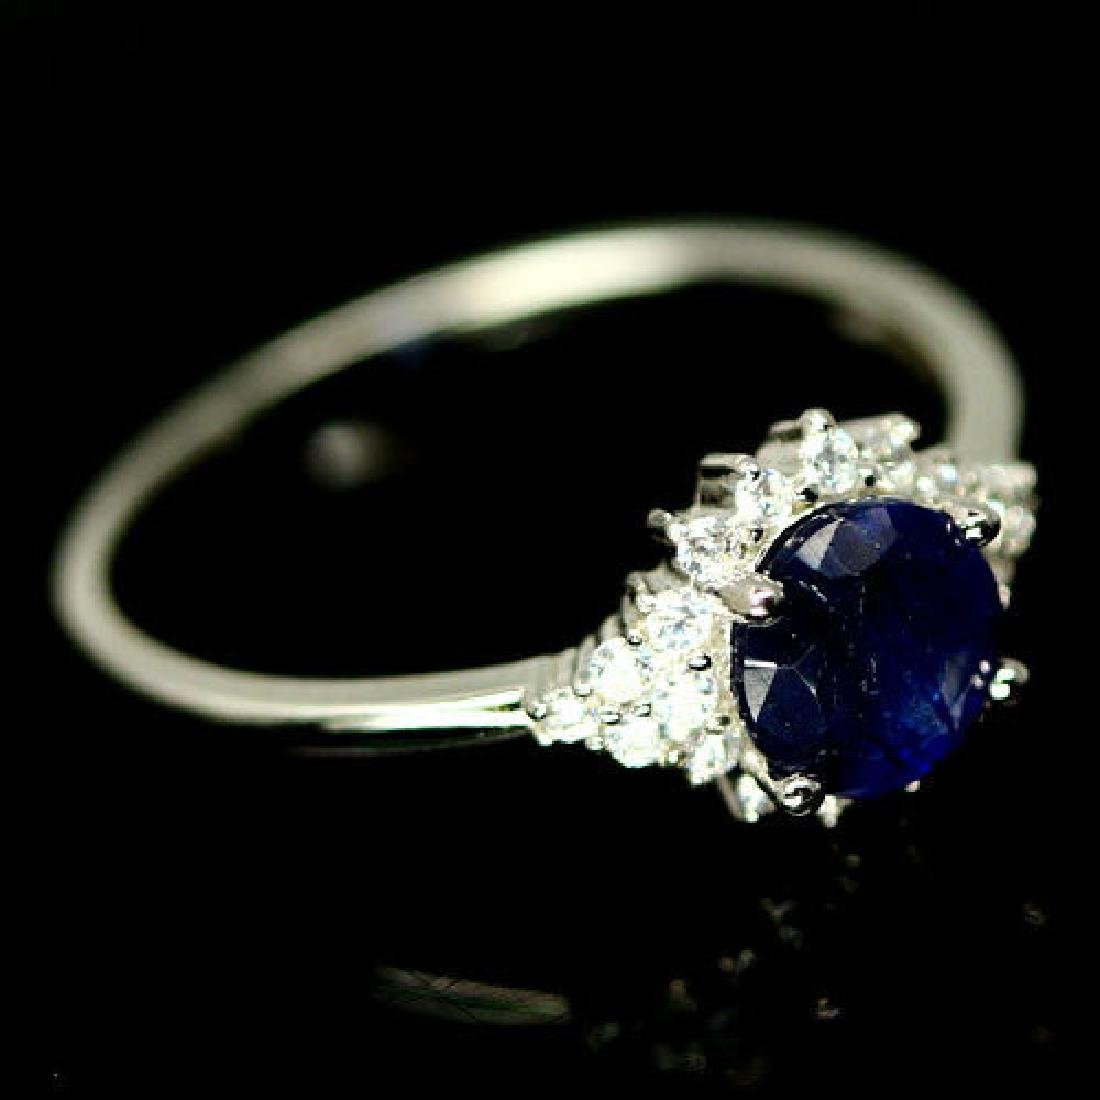 Blue Sapphire Natural & White CZ Silver Sterling Ring - 2